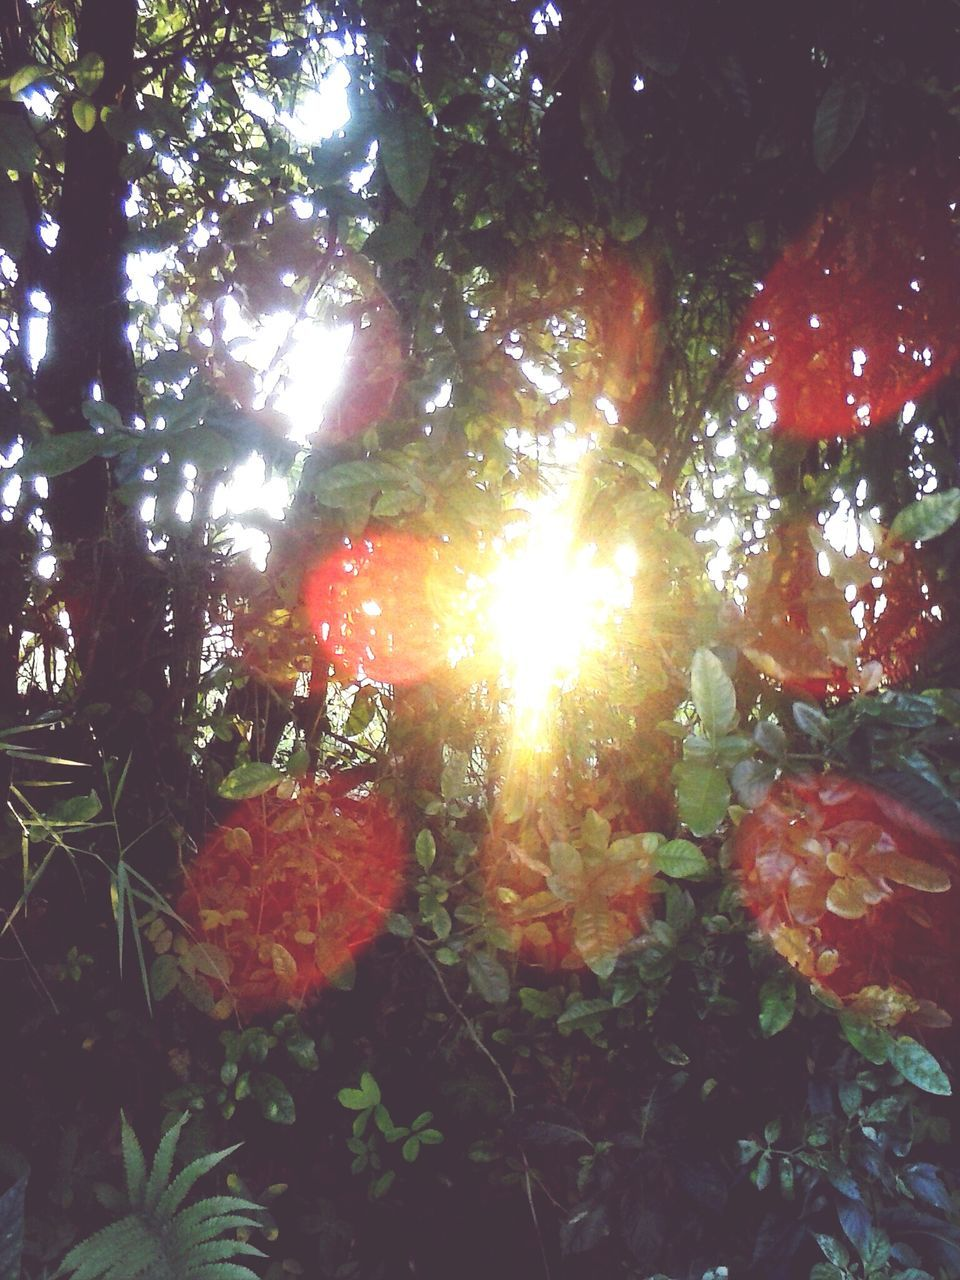 nature, growth, tree, lens flare, sunbeam, no people, sunlight, sun, beauty in nature, tranquility, outdoors, leaf, plant, day, low angle view, forest, branch, freshness, close-up